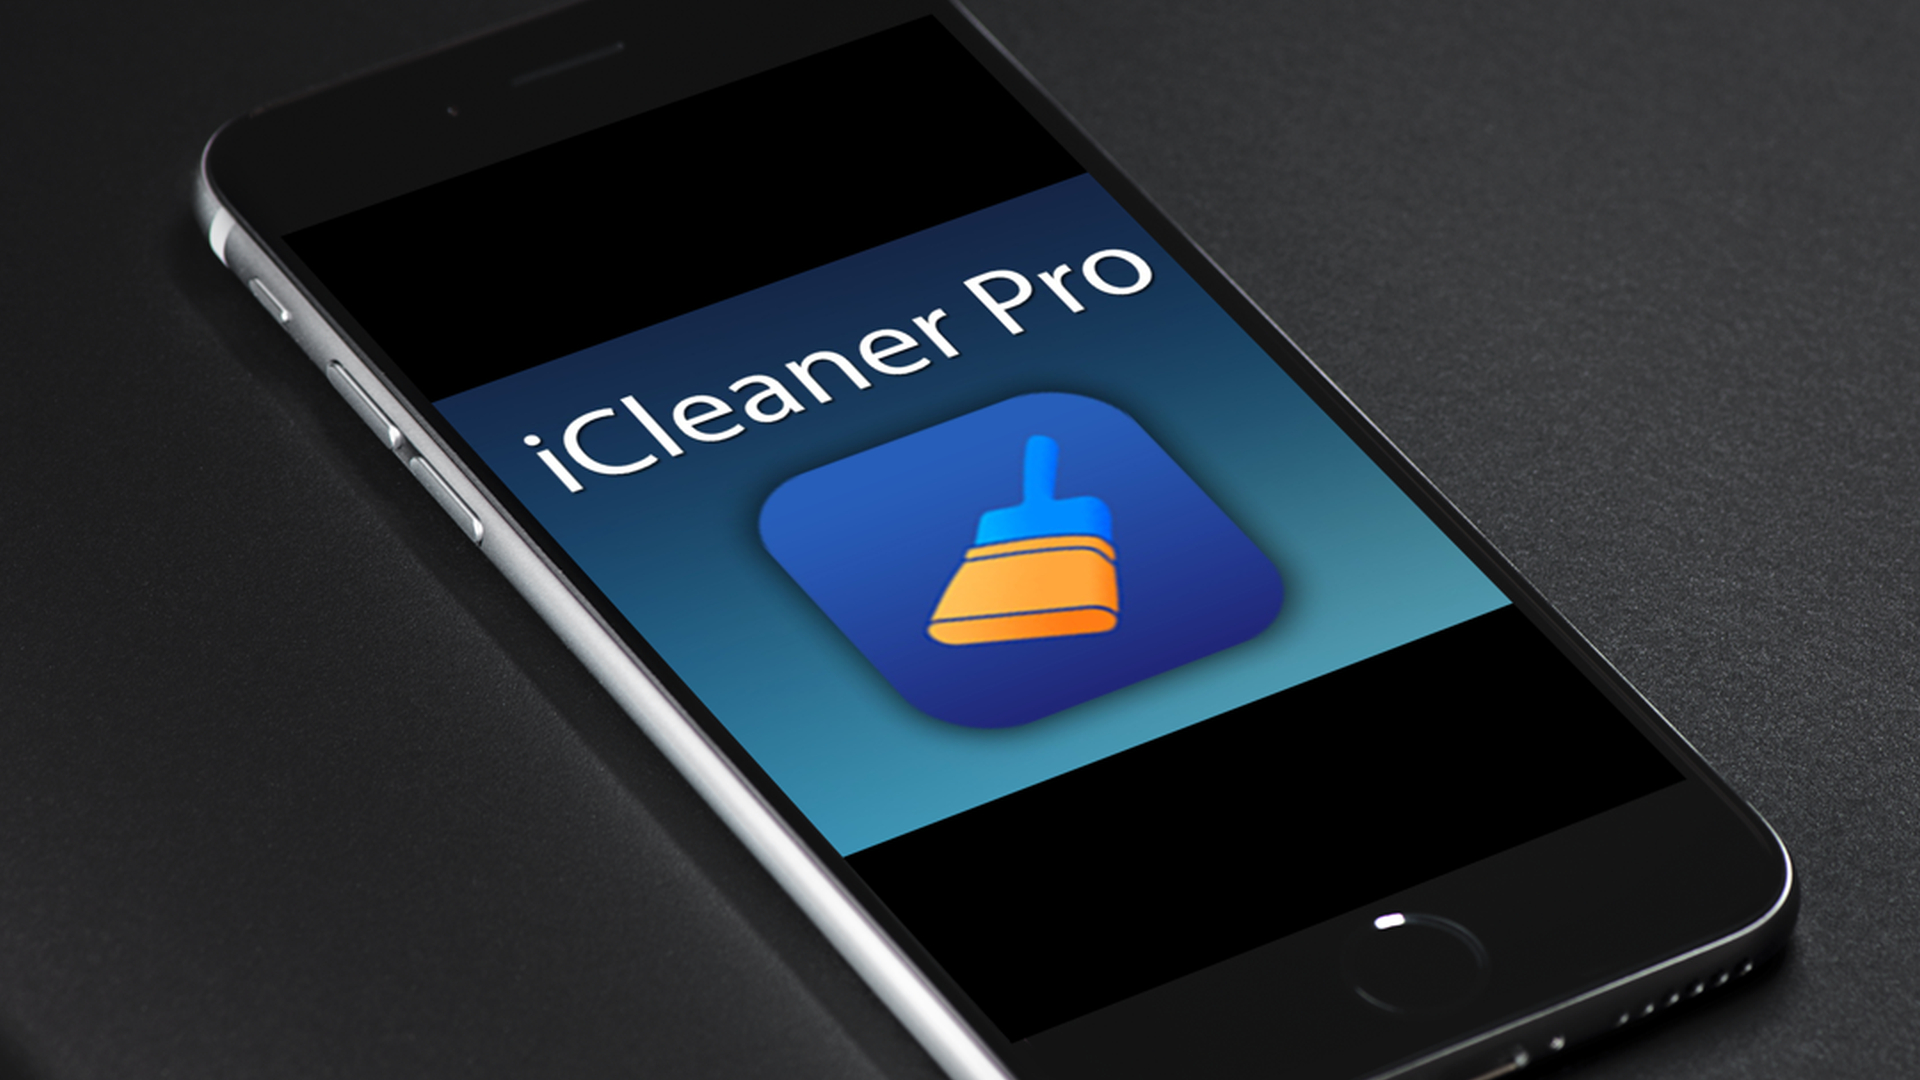 How to transfer pictures from iphone to computer windows 10